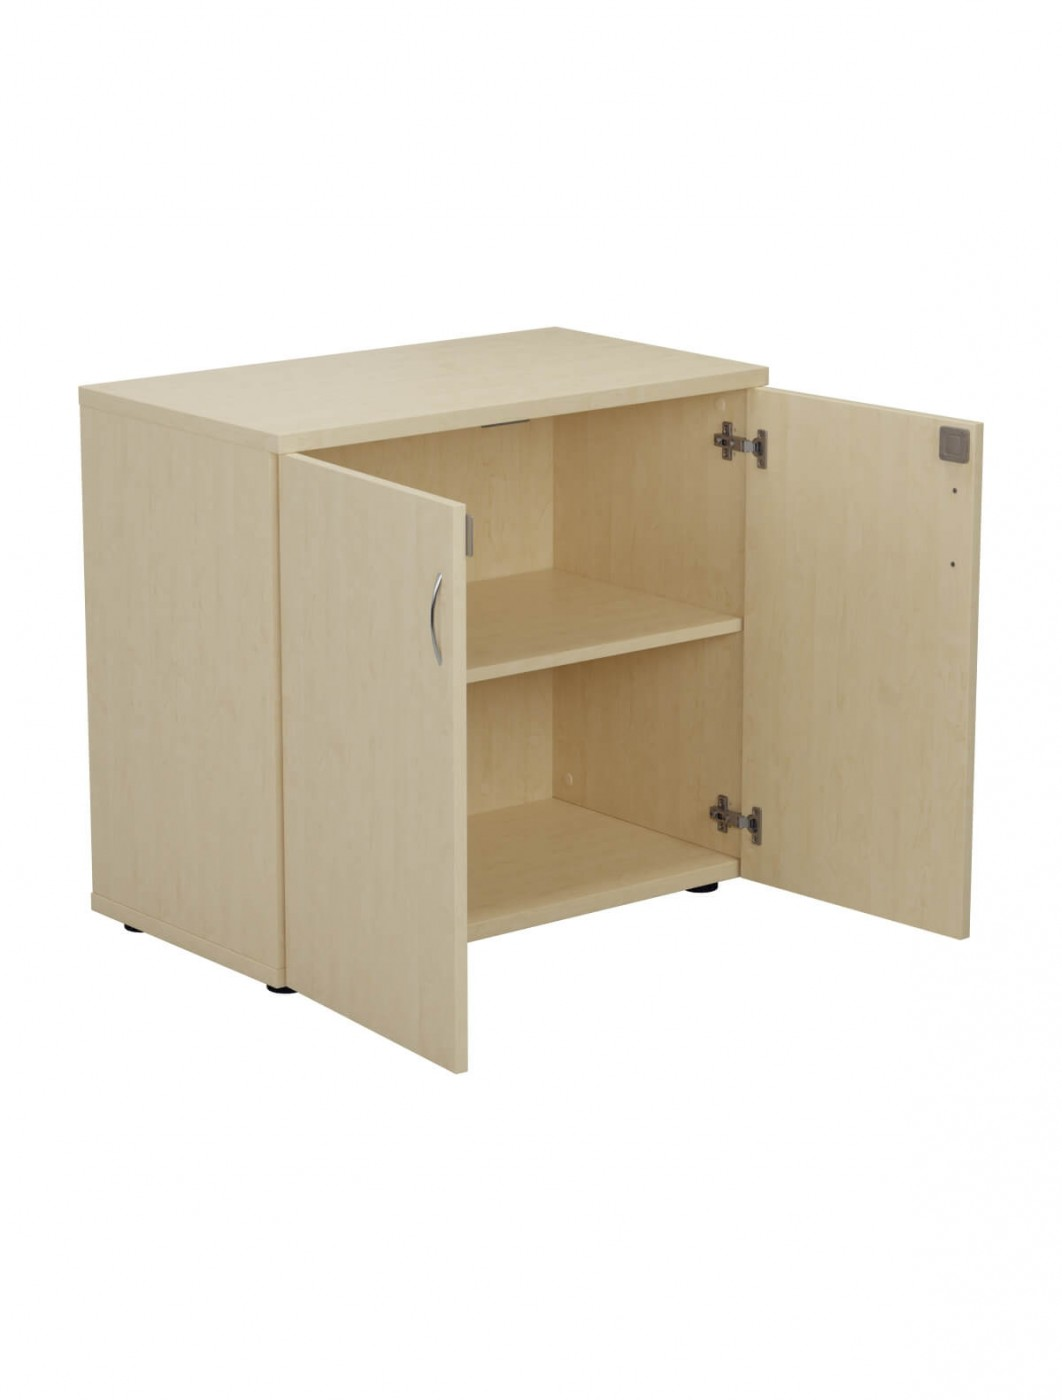 Office Storage Cupboard   Desk High Cupboard TES745CP   Enlarged View